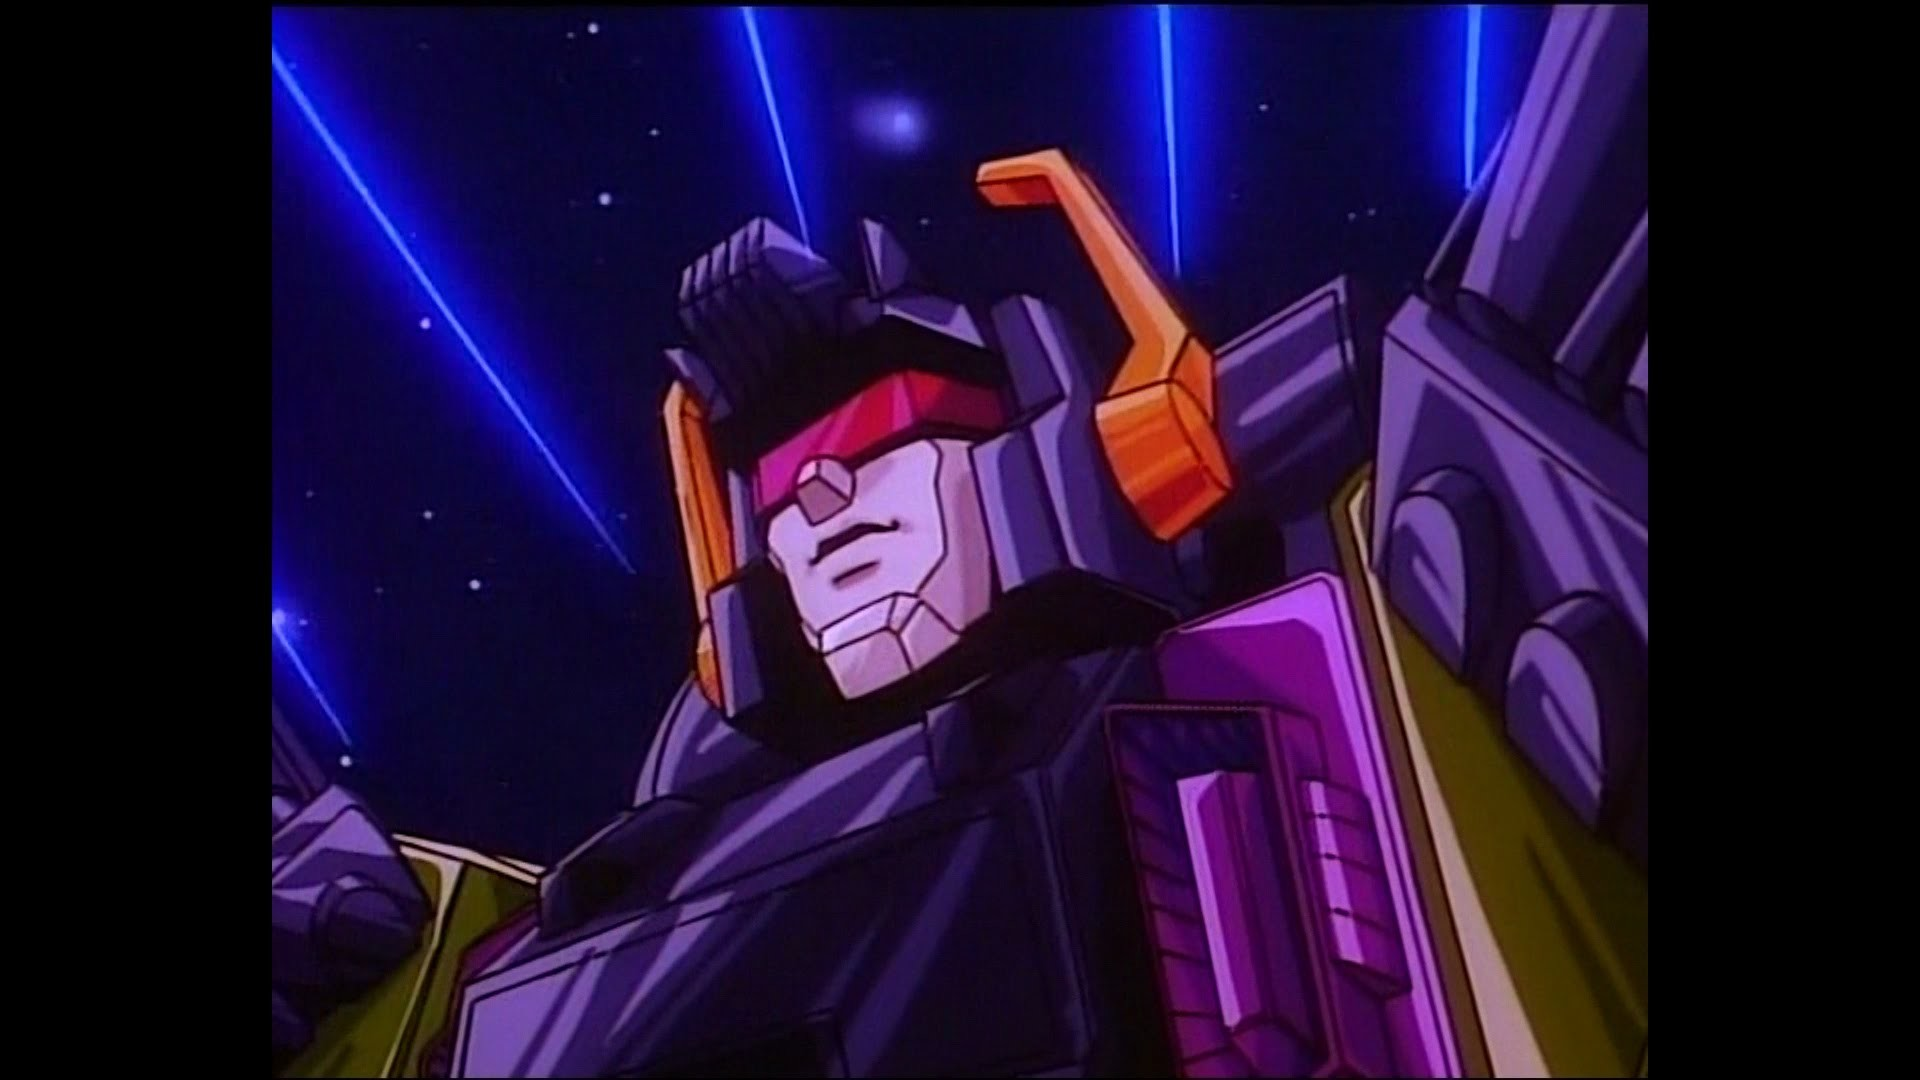 Awesome 80's Cartoon and TV Show Intros Transformers season 4 – YouTube